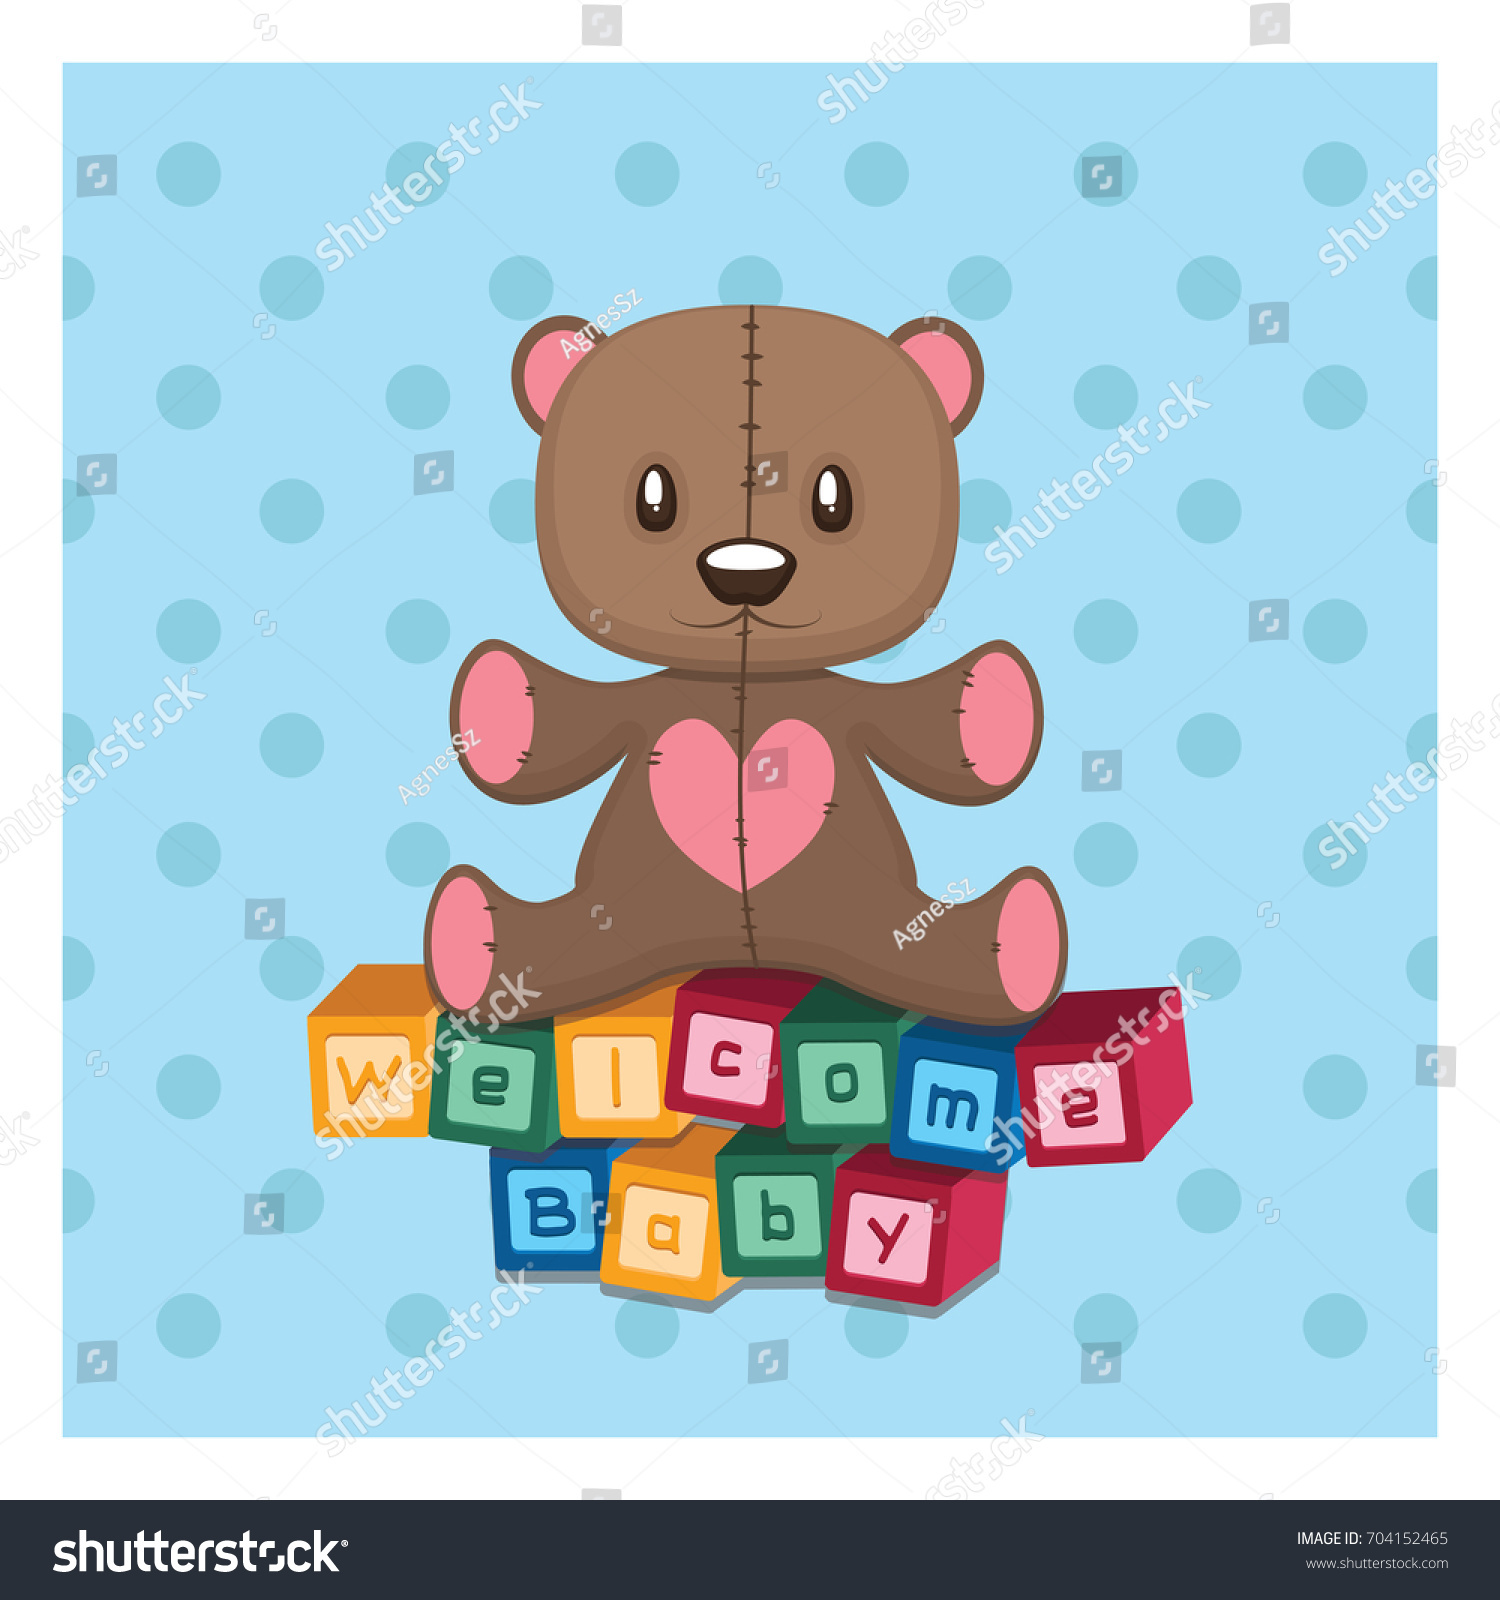 Wel e Baby Greeting Teddy Building Blocks Stock Vector